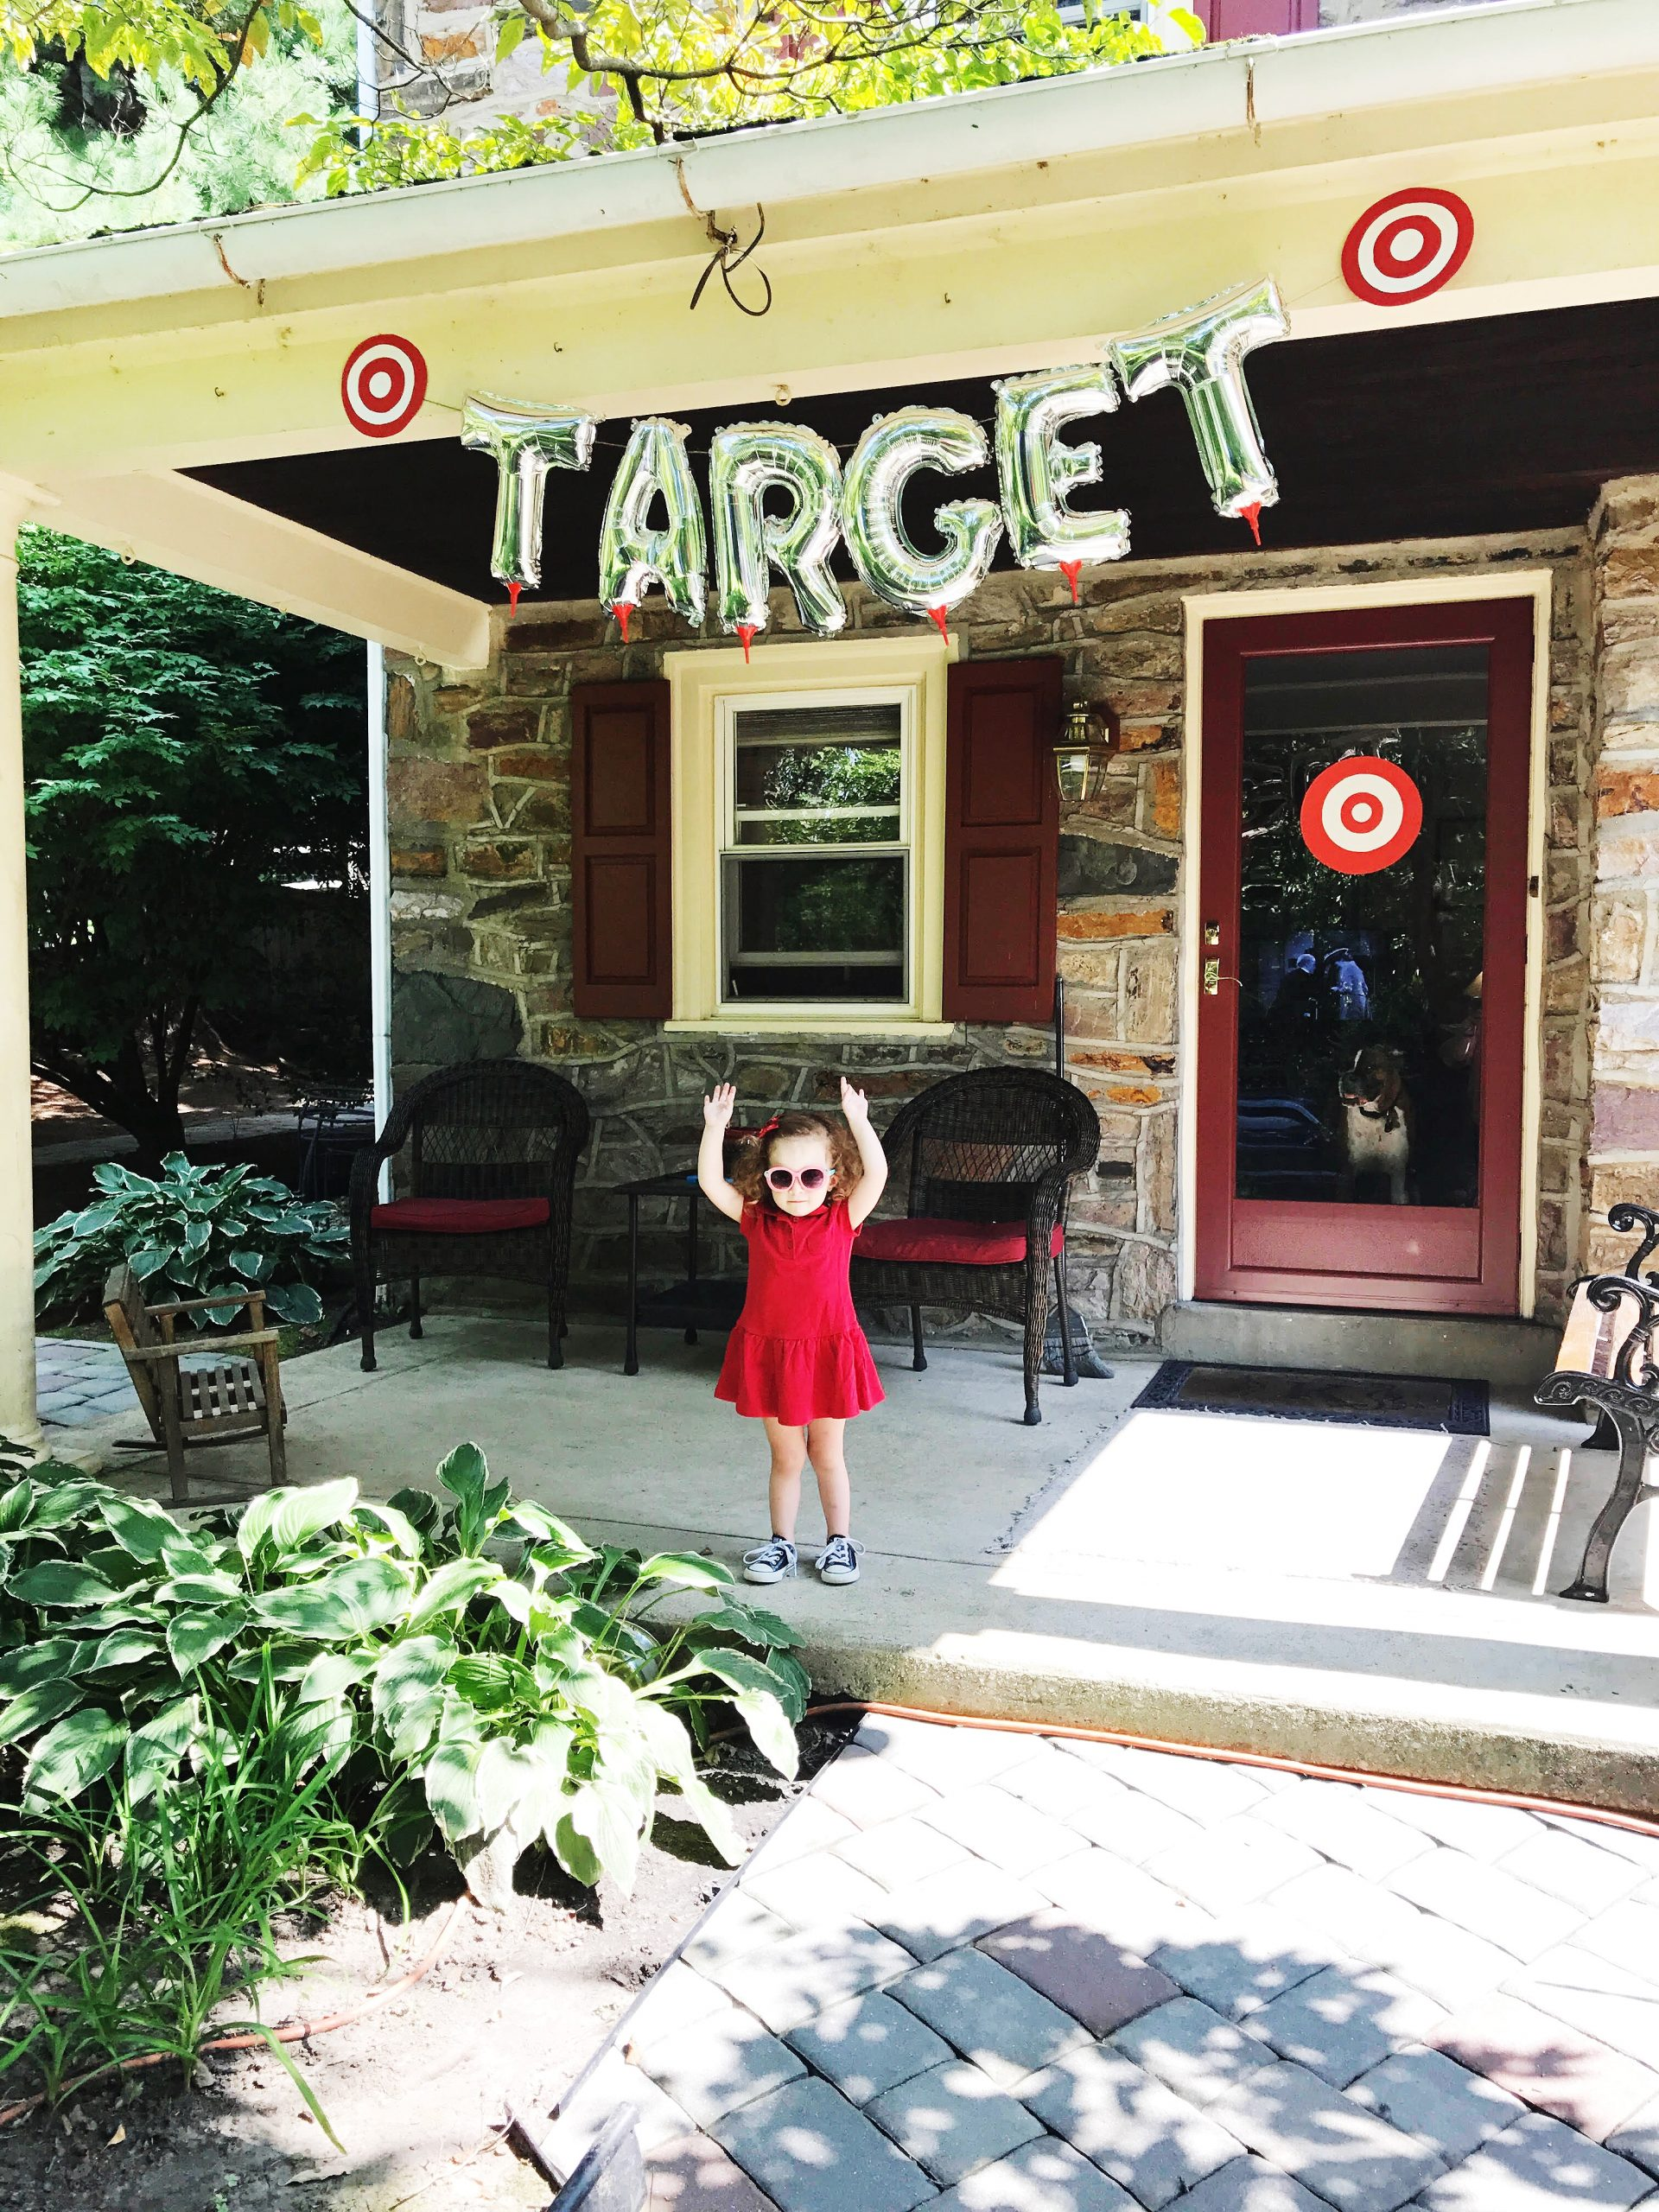 This Girl Got The Target Birthday Part Of Her Dreams